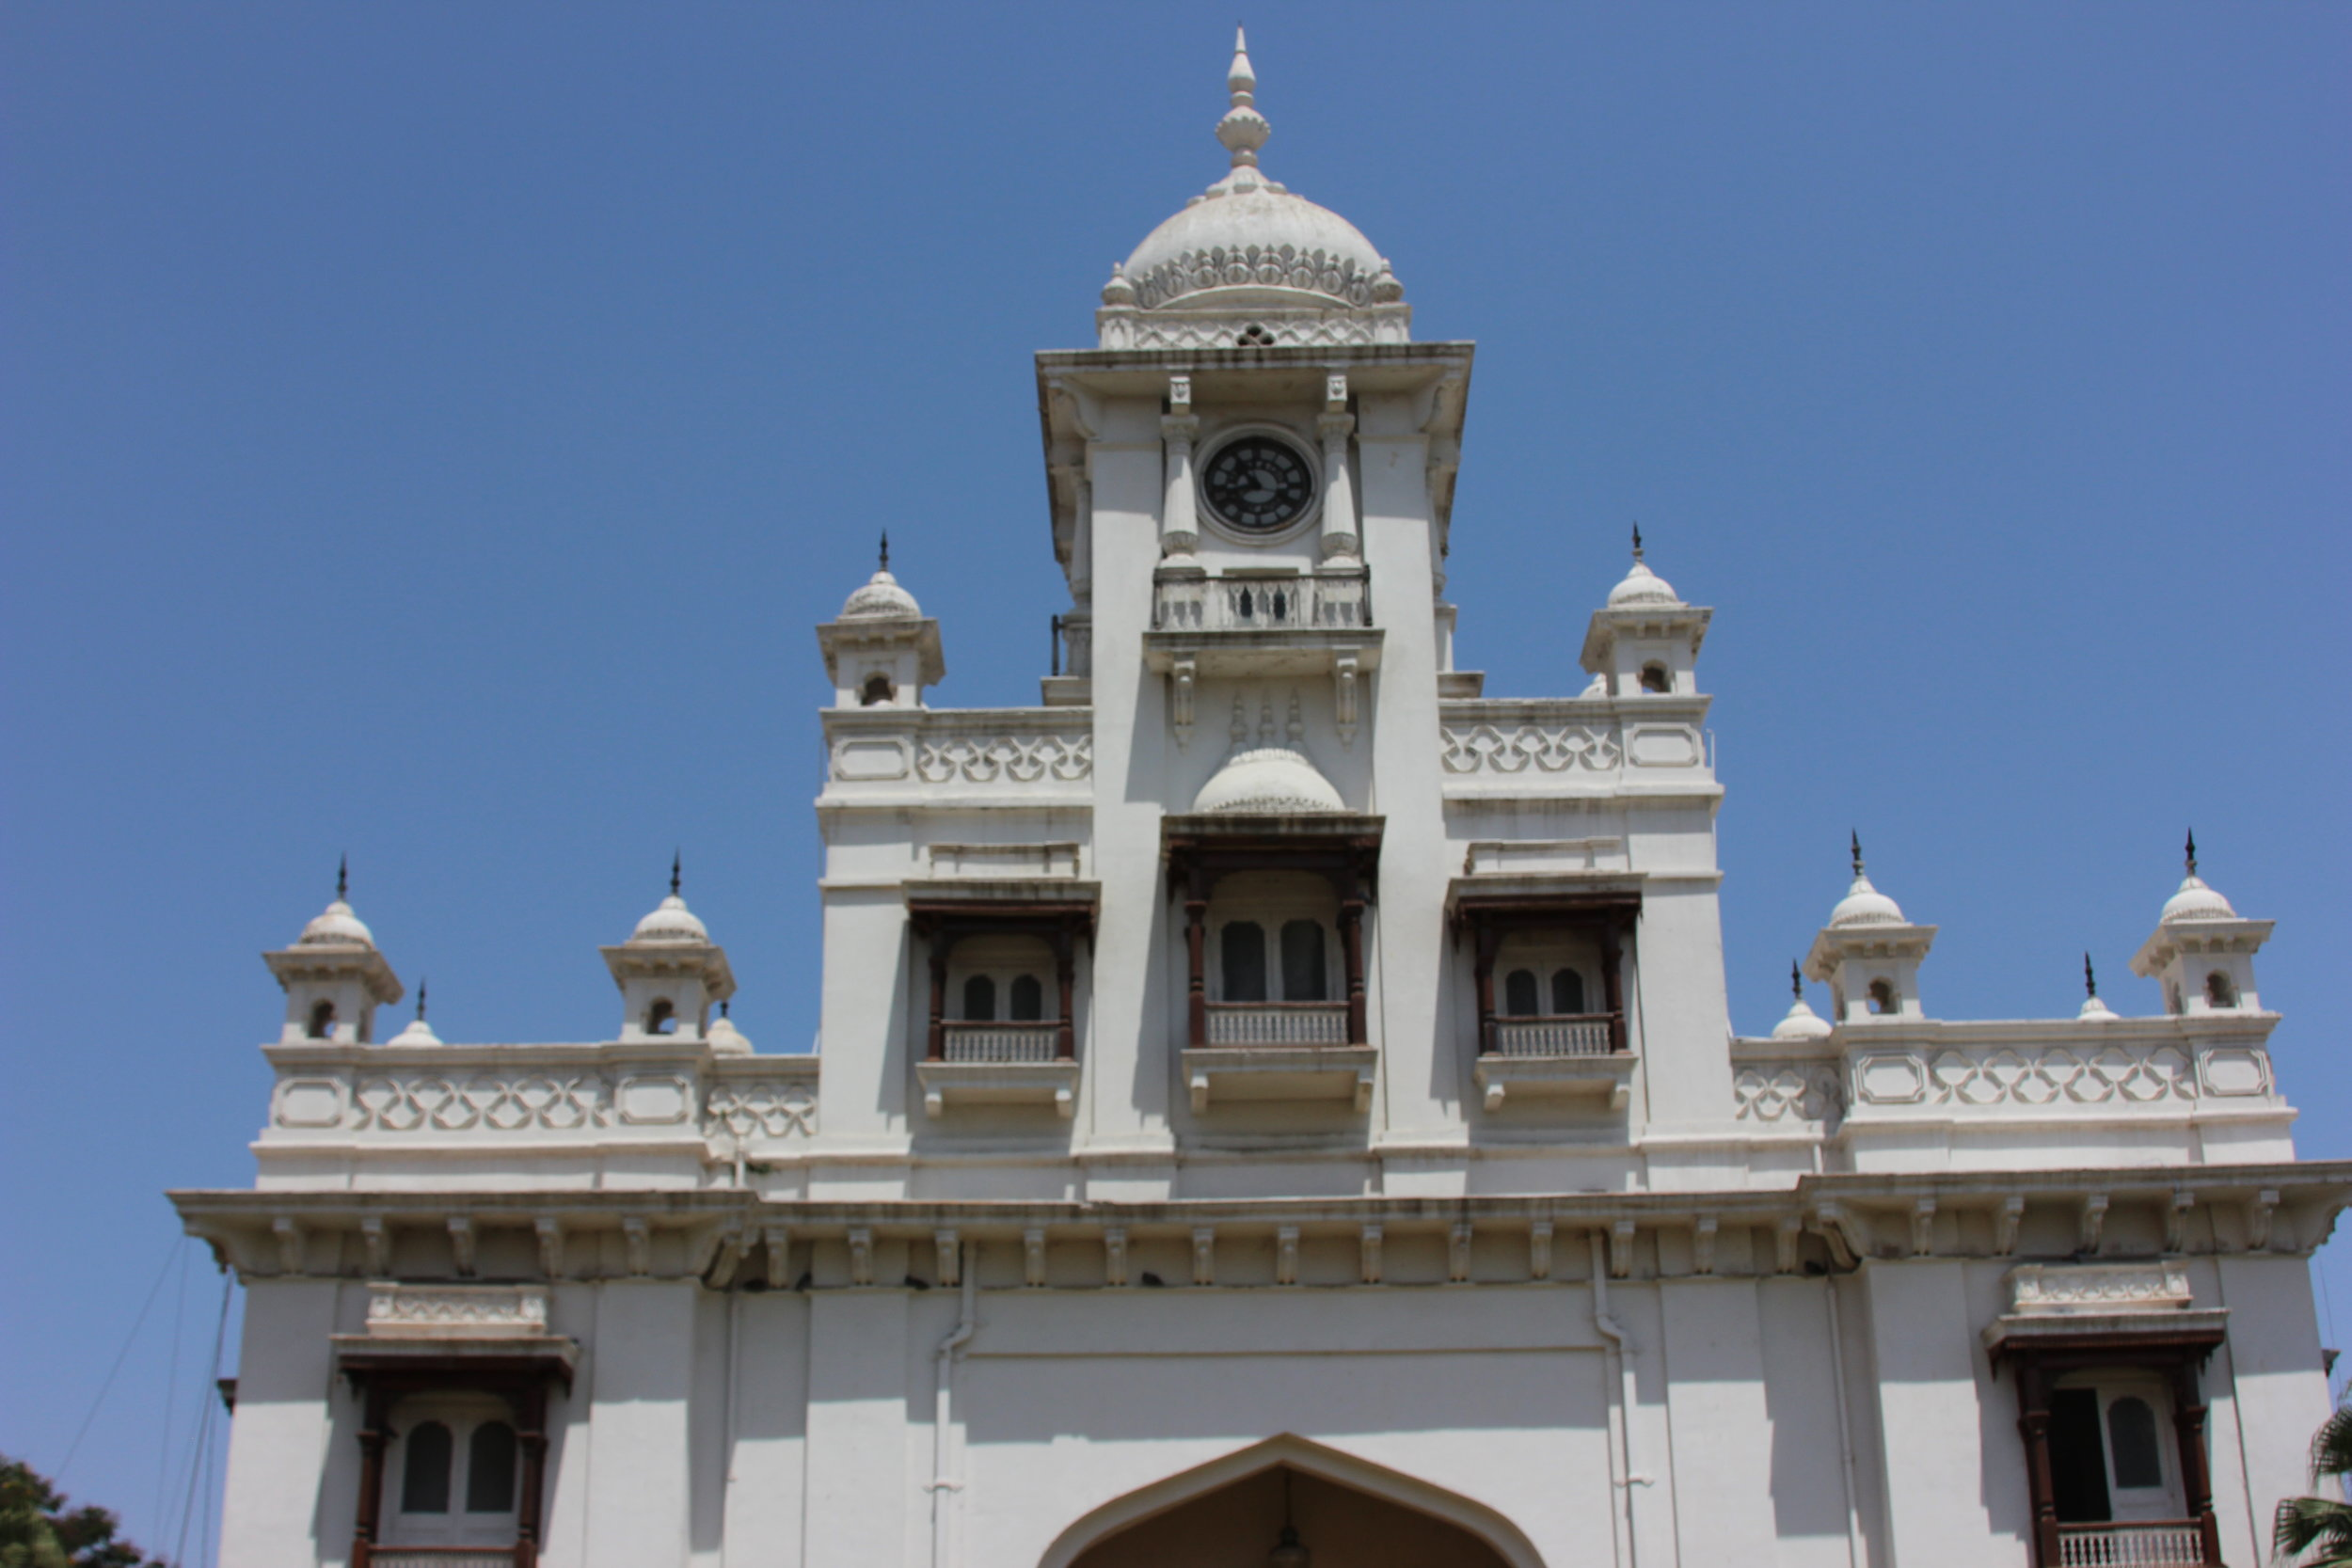 Clock Tower above the main gate of Chowmahalla has been ticking away for around 125+ years